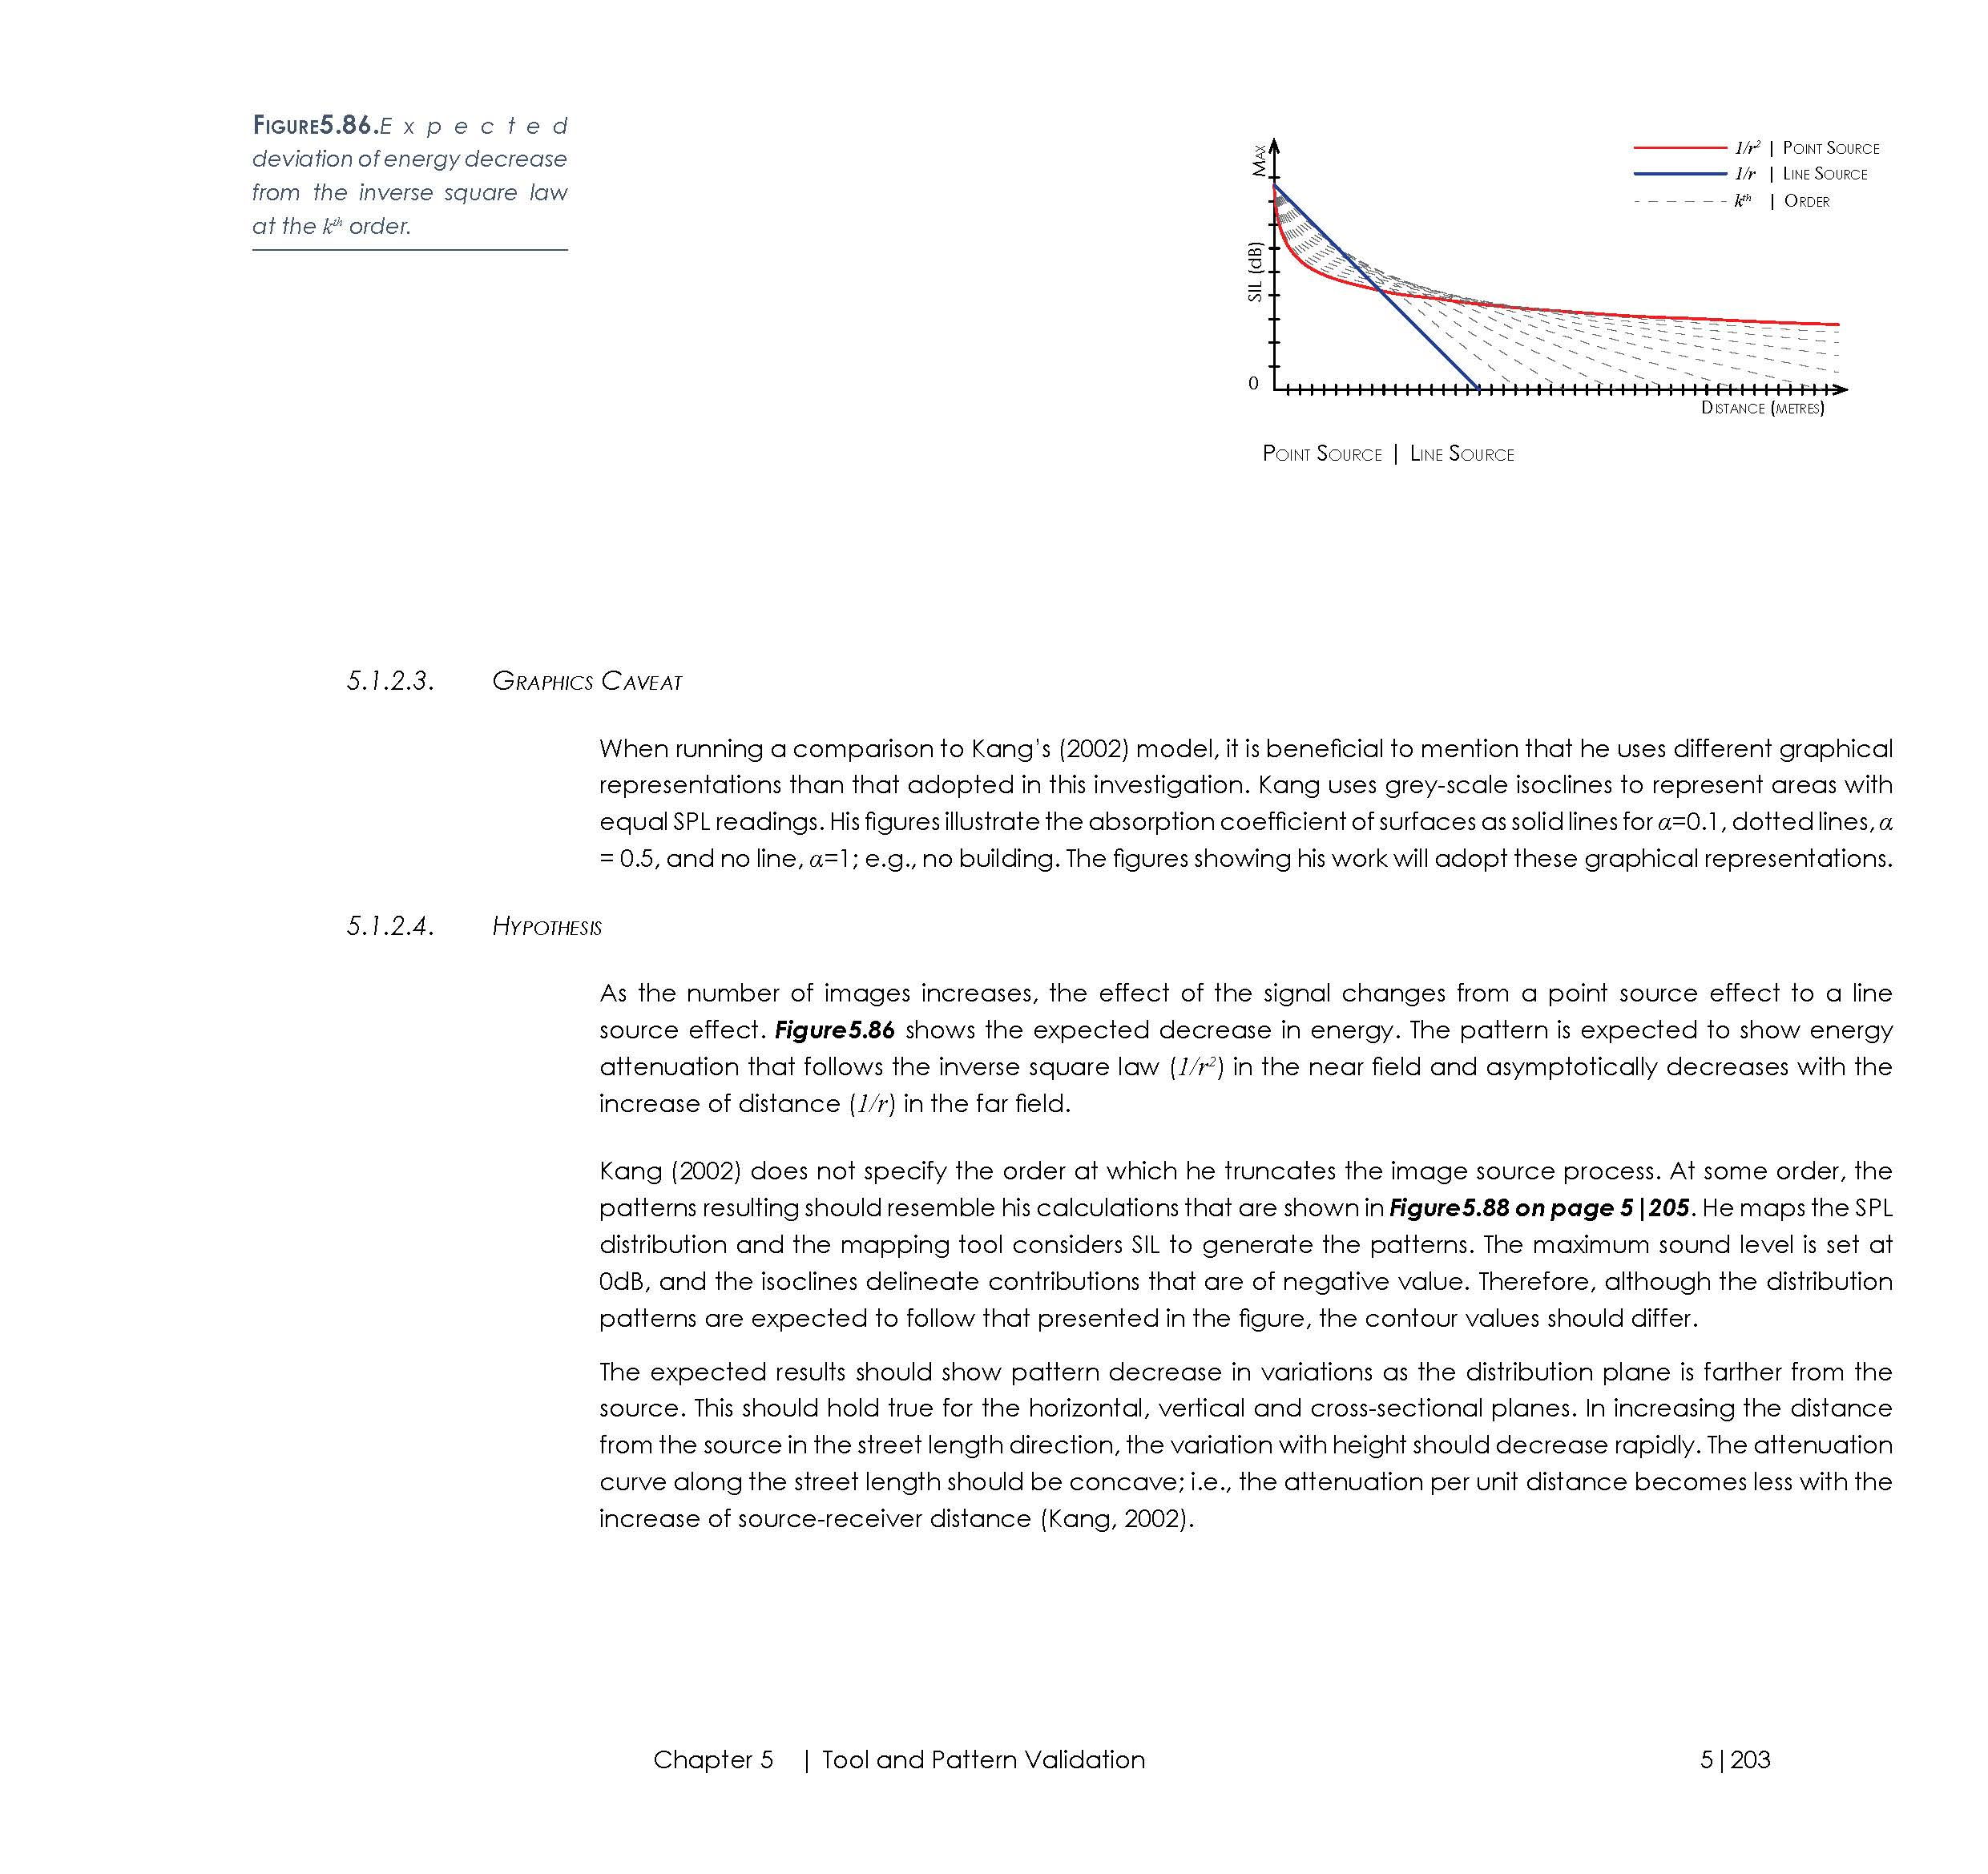 16.03.03_Thesis_01_Interactive_Page_239.jpg